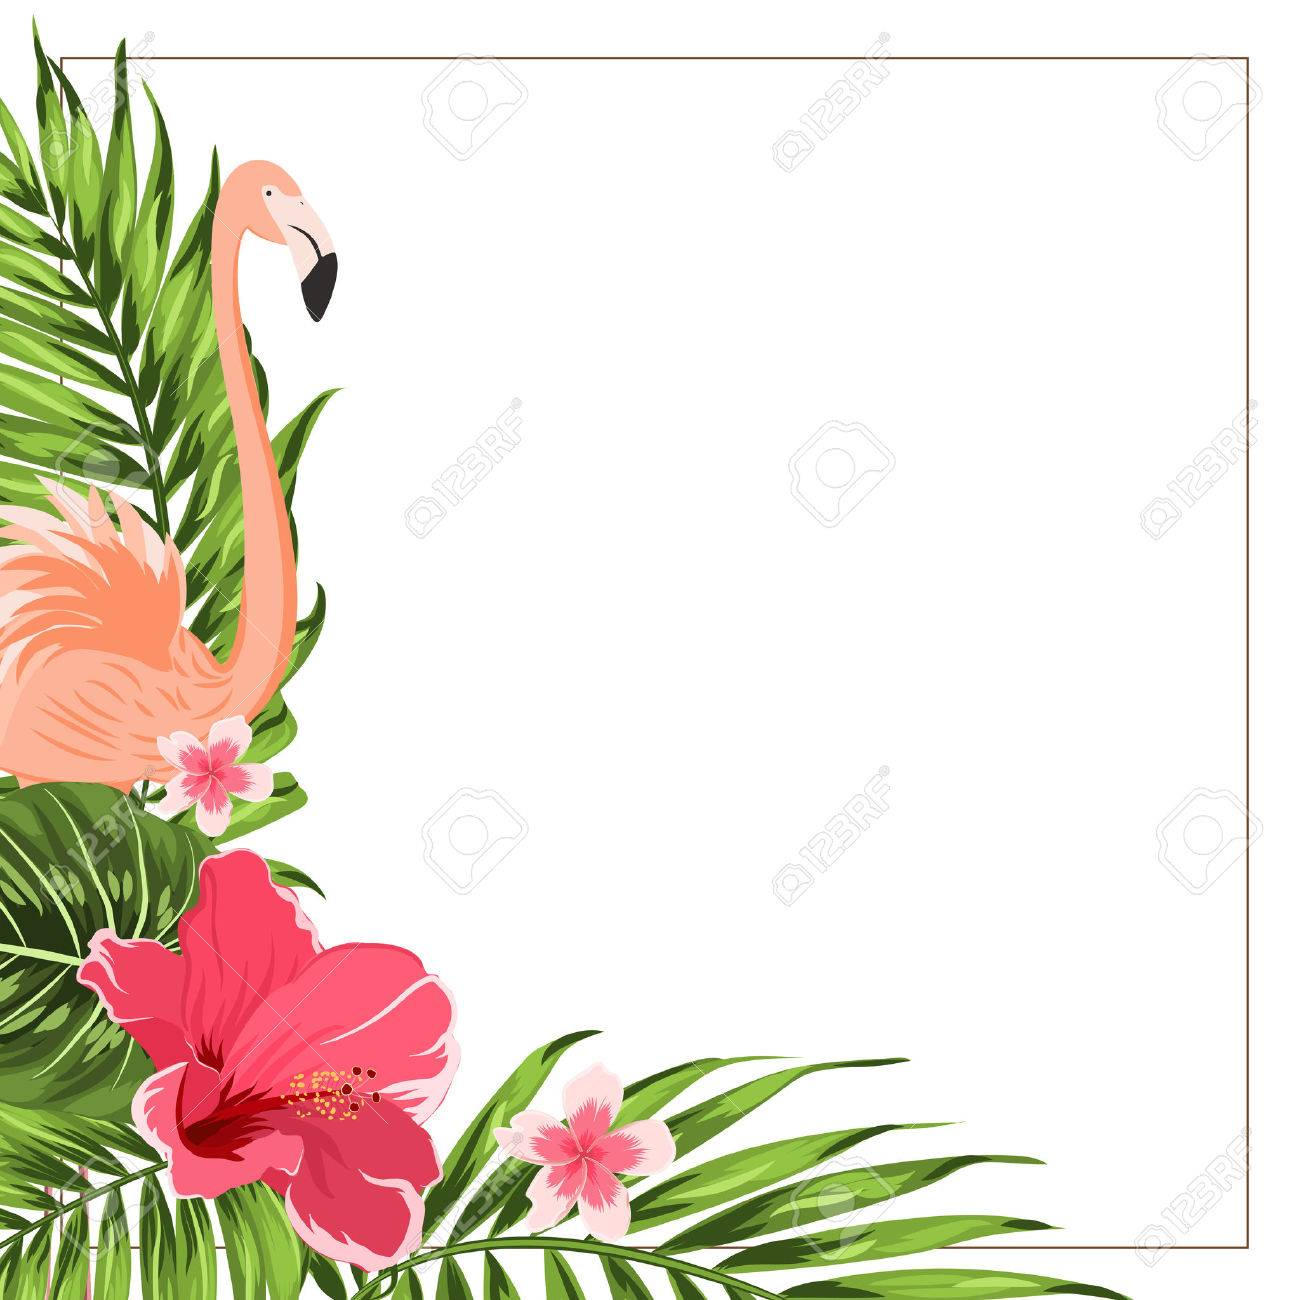 Tropical exotic greenery corner border frame template flamingo tropical exotic greenery corner border frame template flamingo bird hibiscus and plumeria flowers izmirmasajfo